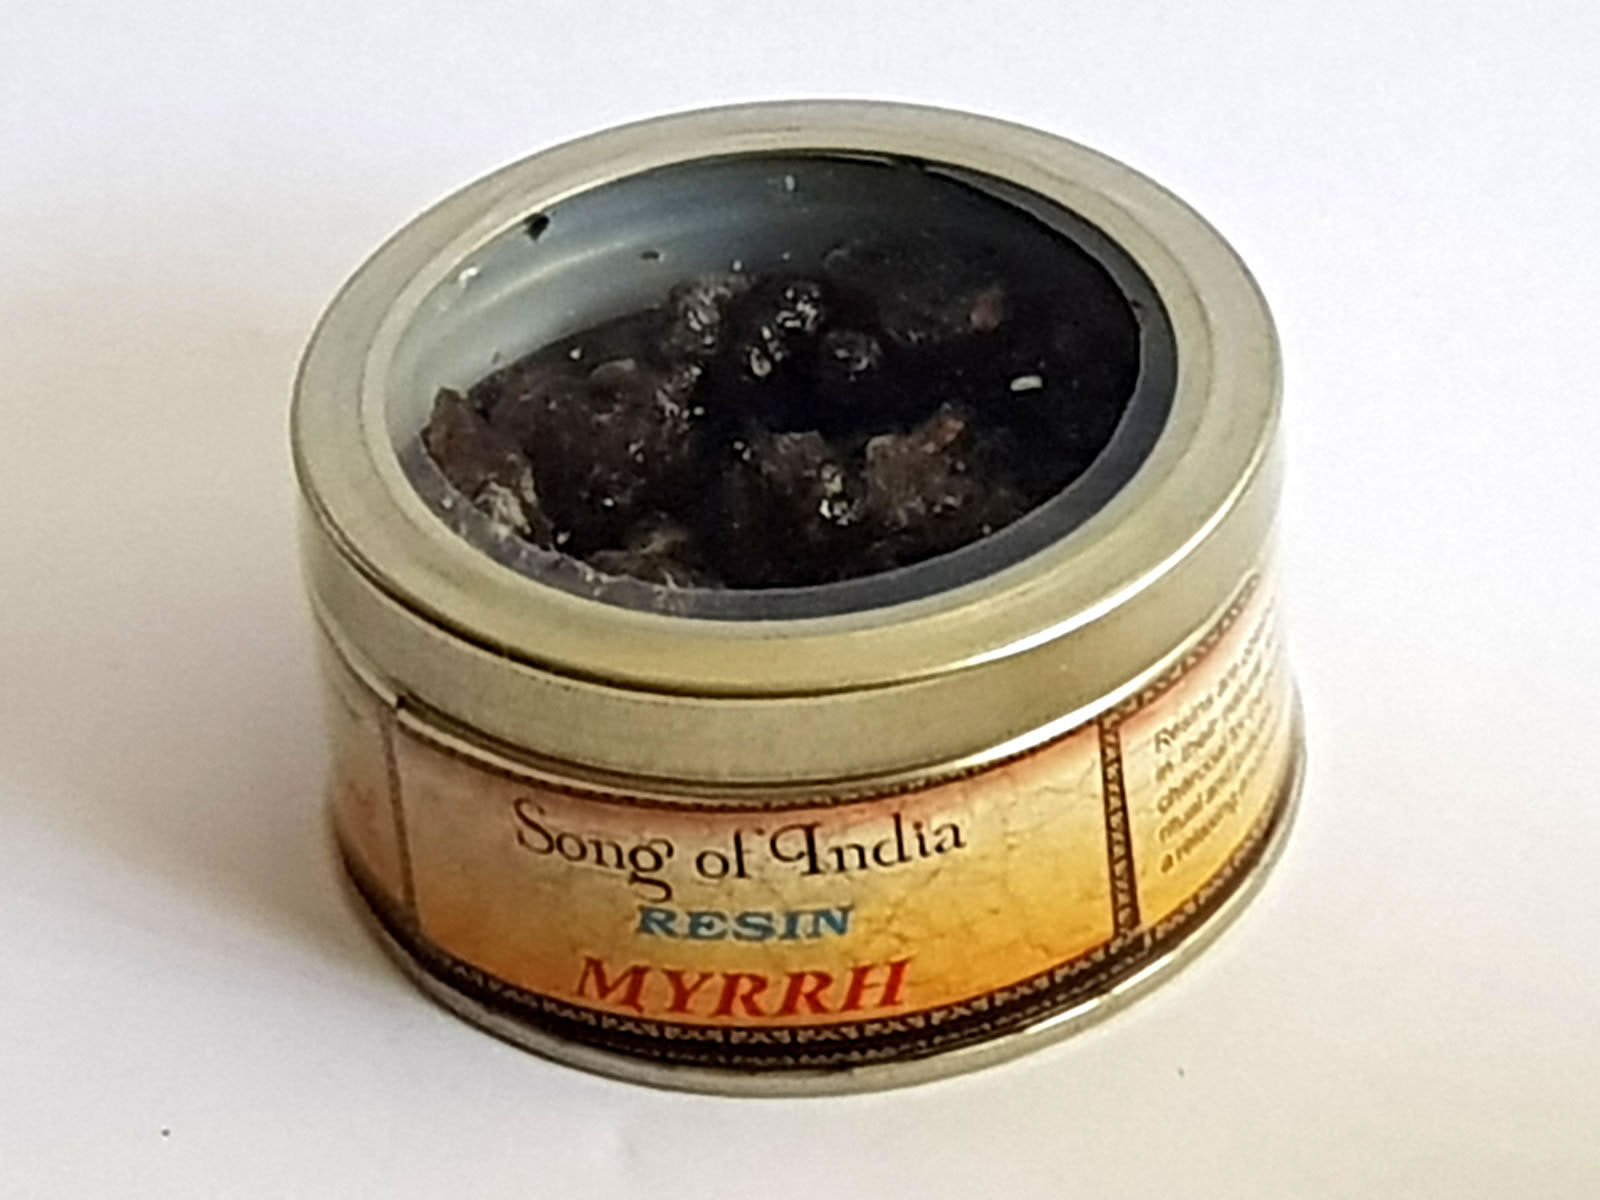 Song of India Resin - MYRRH